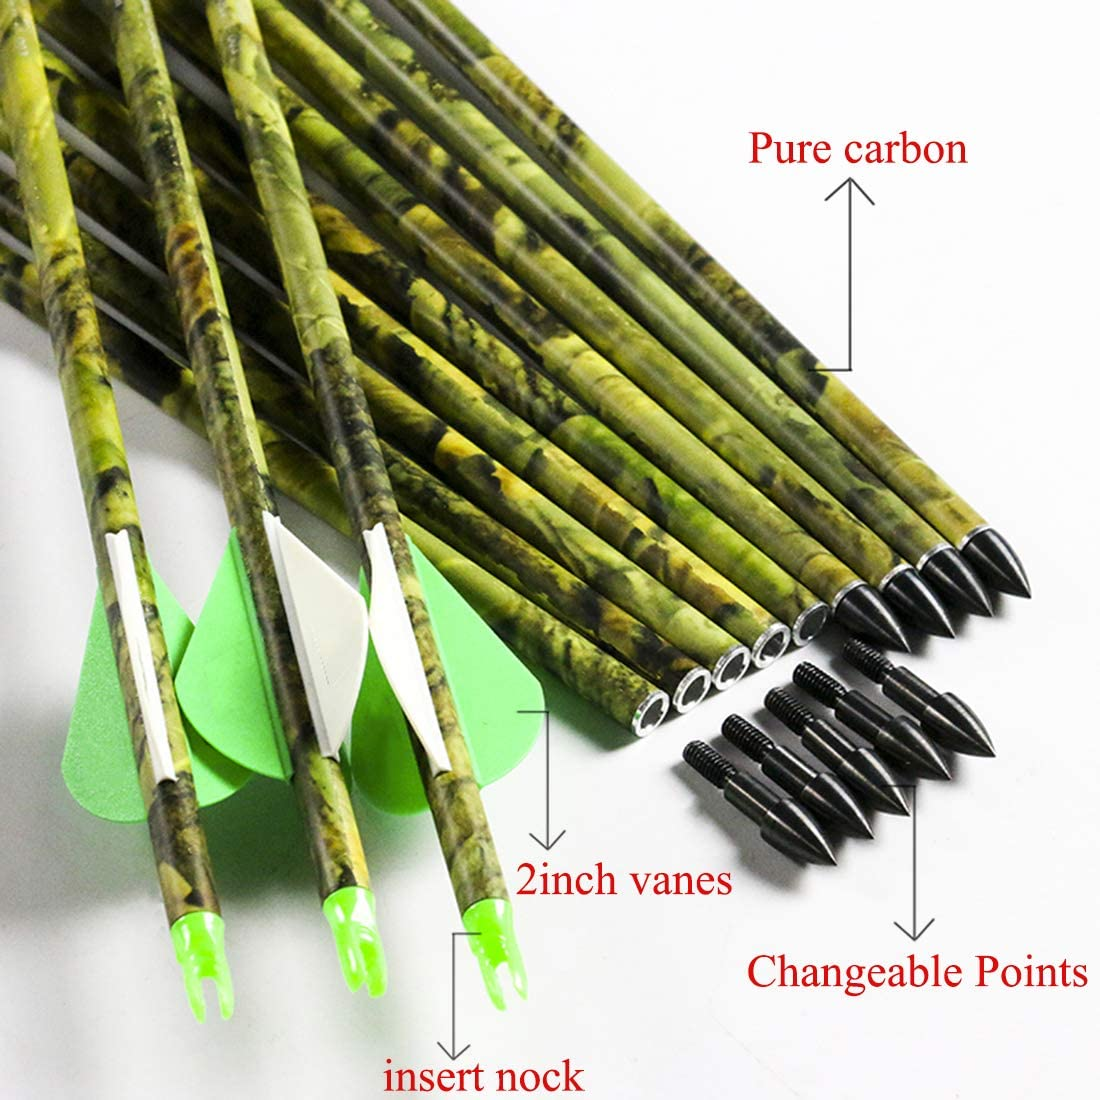 Linkboy Archery Spine 300 400 500 600 Carbon Arrows for Compound Recurve Long Bows Adult Hunting Practice 30 32 Inch Arrow Pack of 12PCS : Sports & Outdoors